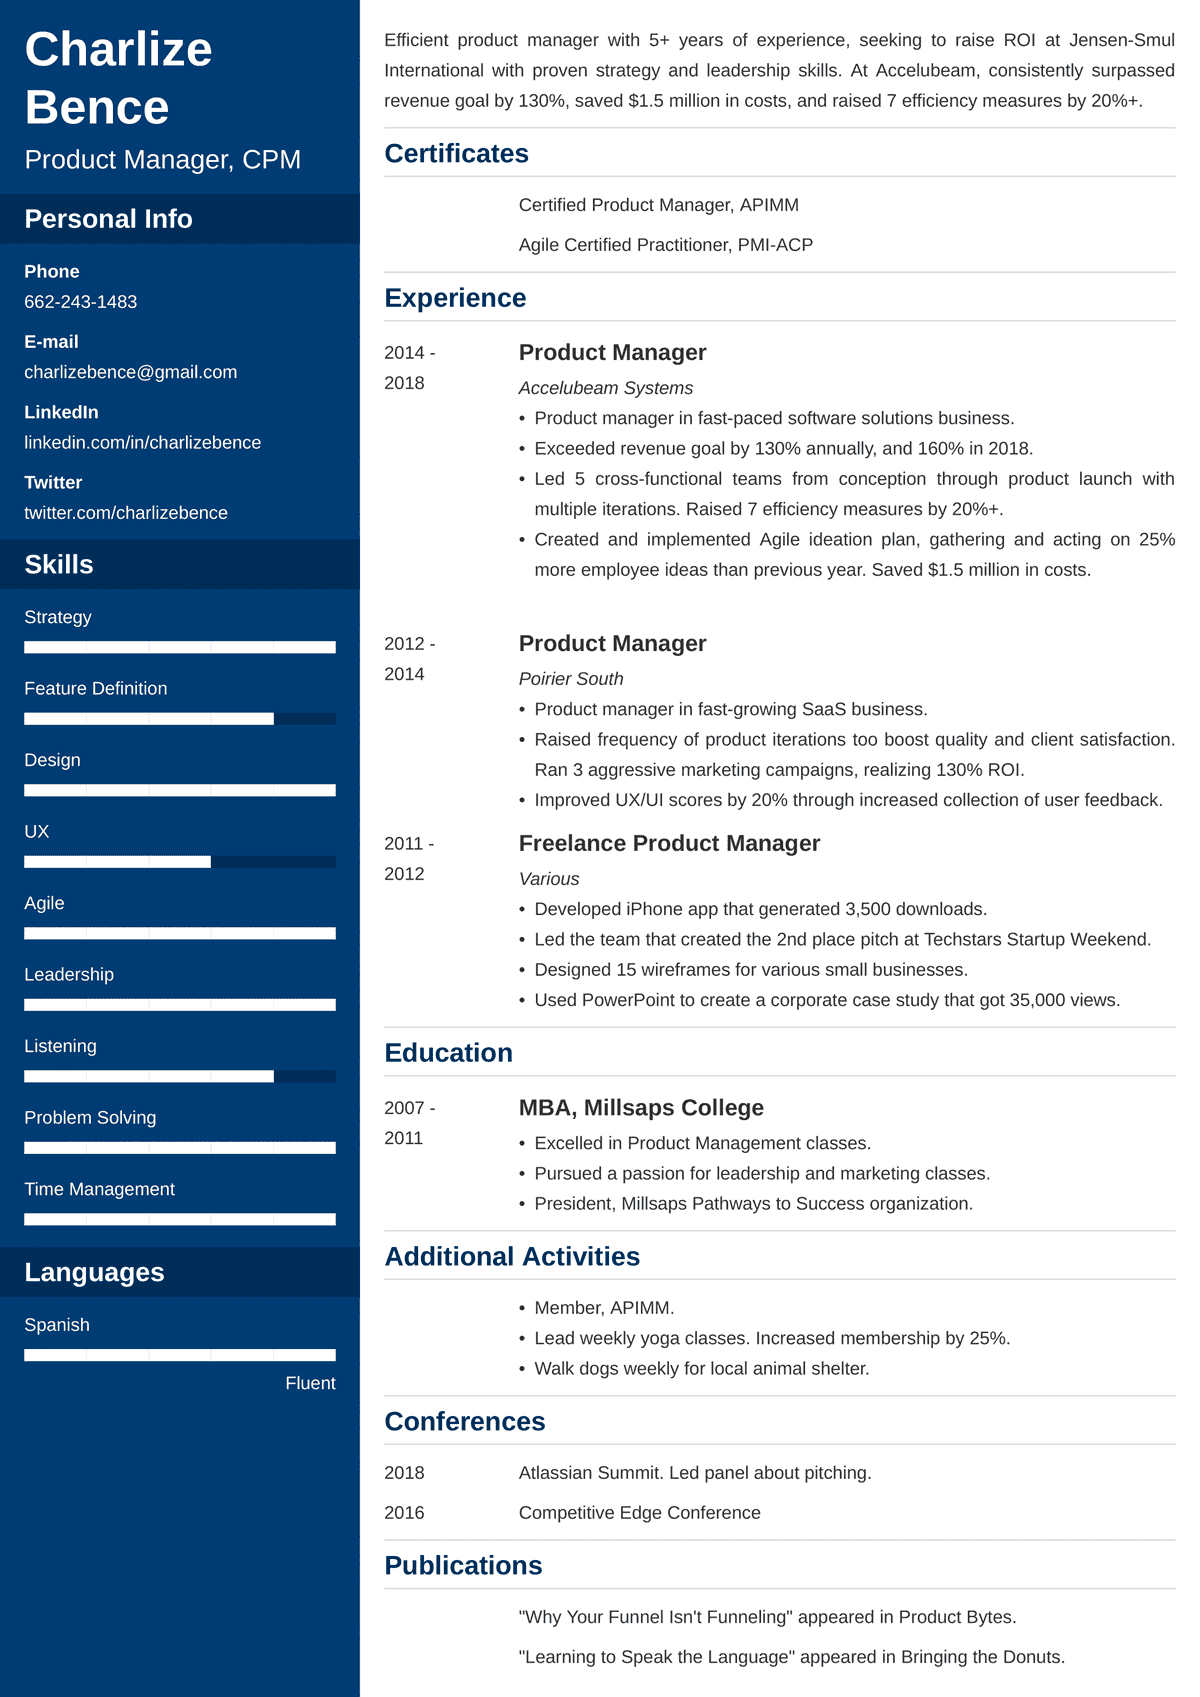 product manager resume sample—examples and 25 writing tips